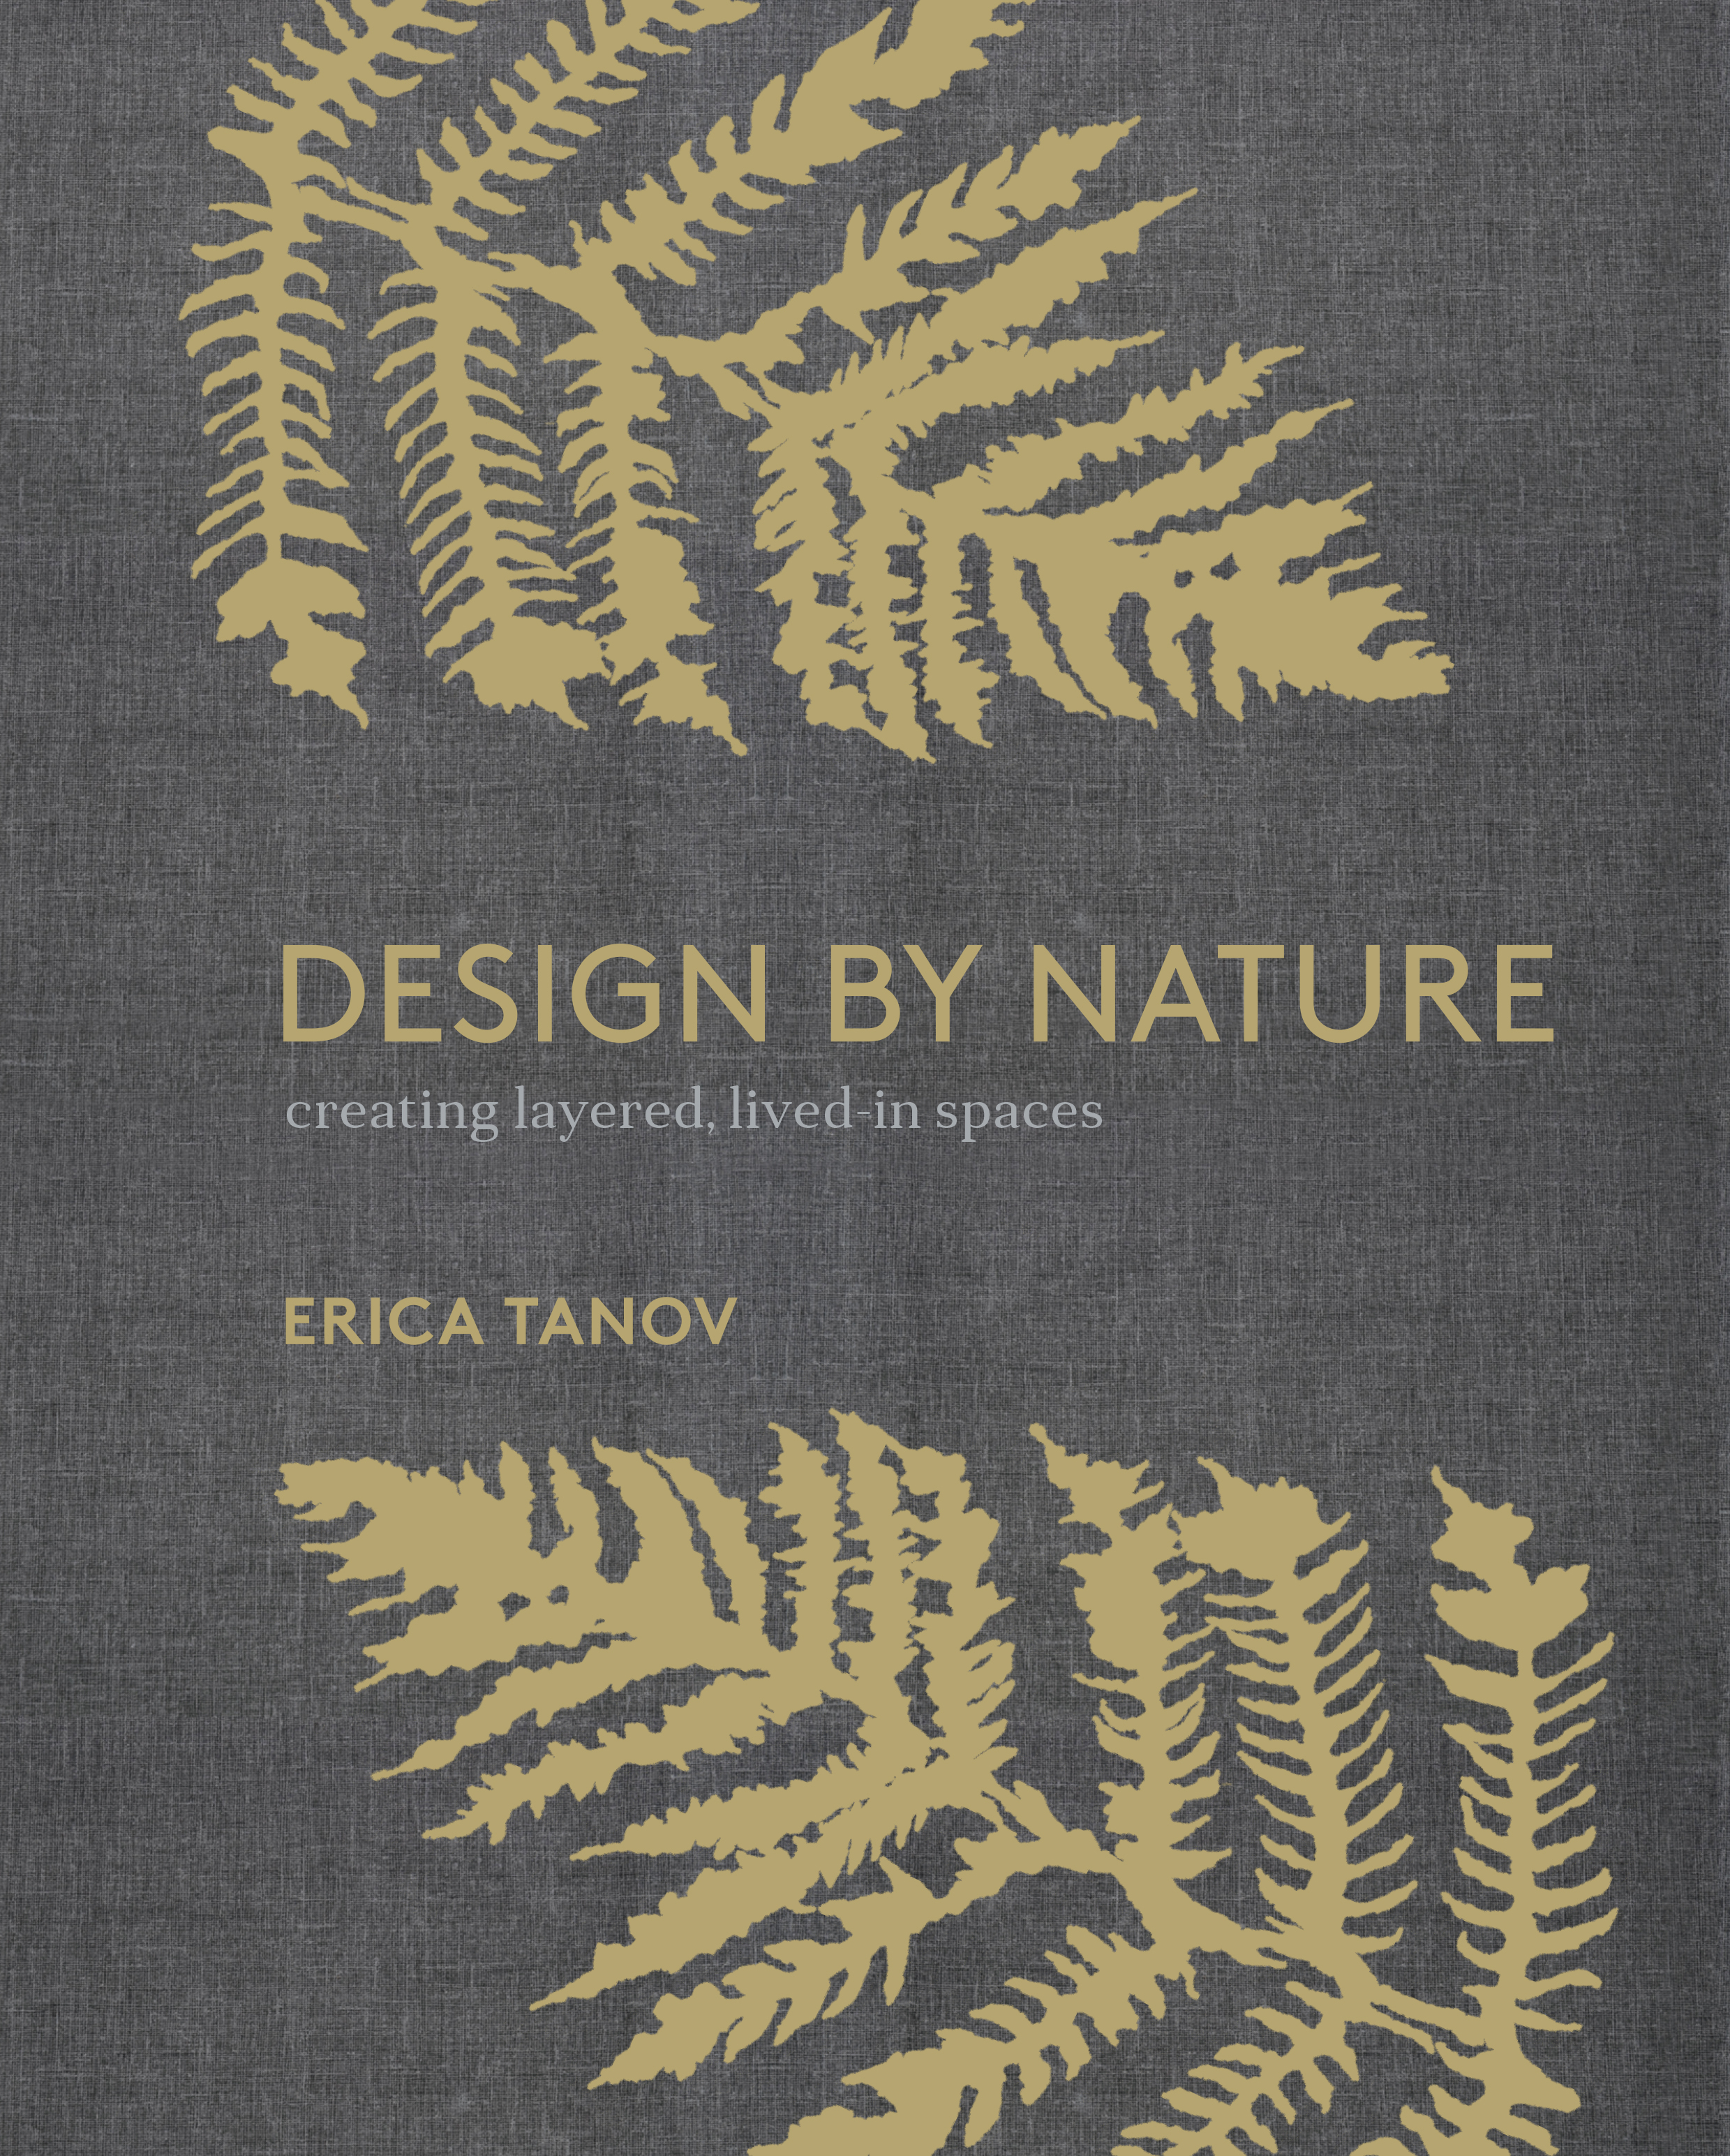 Reprinted with permission from  Design by Nature: Creating Layered, Lived-in Spaces Inspired by the Natural World  by Erica Tanov, copyright (c) 2018. Published by Ten Speed Press, a division of Penguin Random House, Inc. Photographs (c) 2018 by Ngoc Minh Ngo